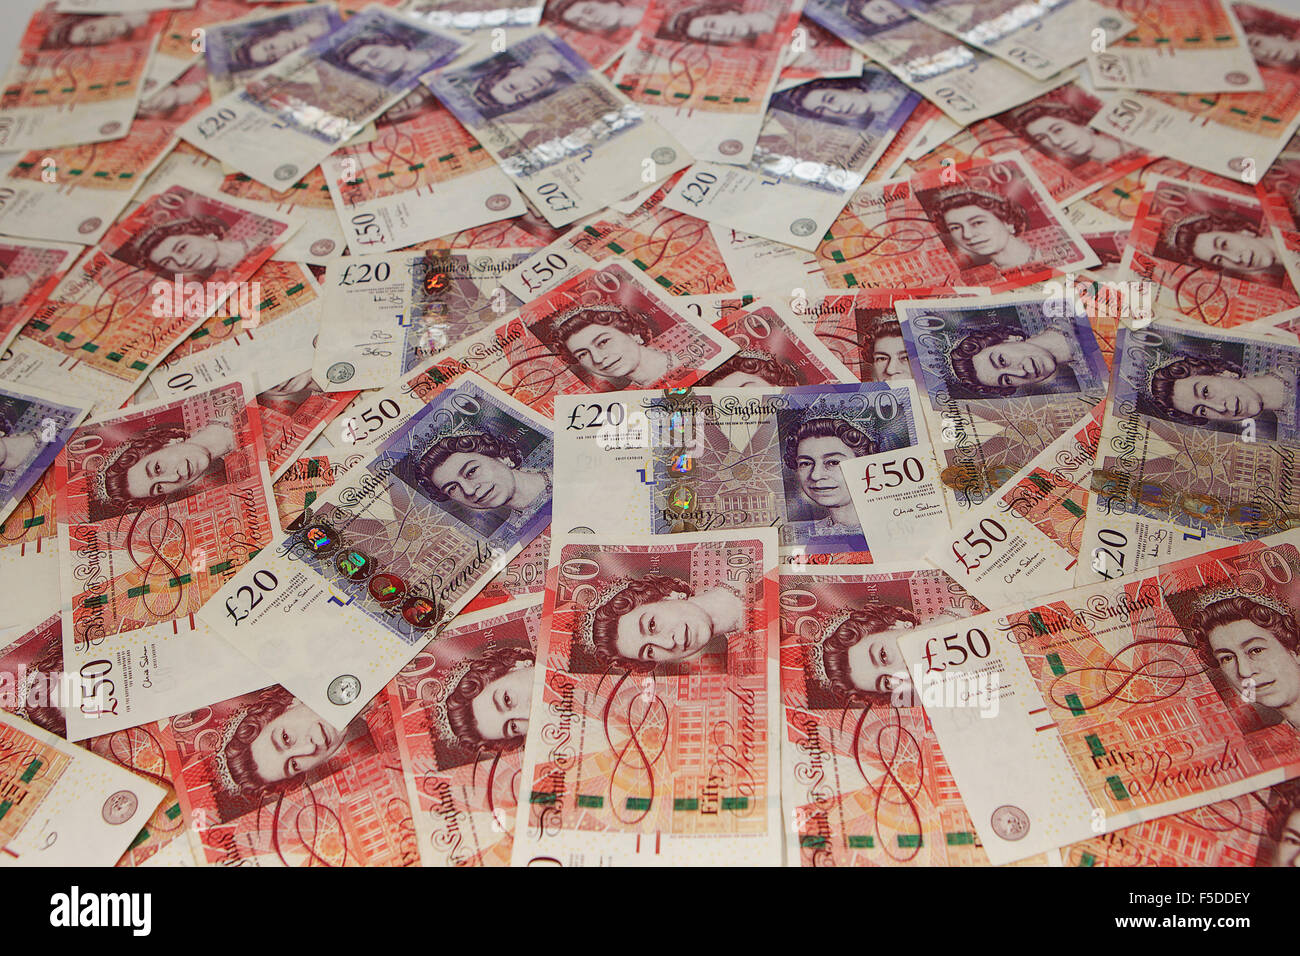 Pile of £20 and £50 notes scattered. - Stock Image